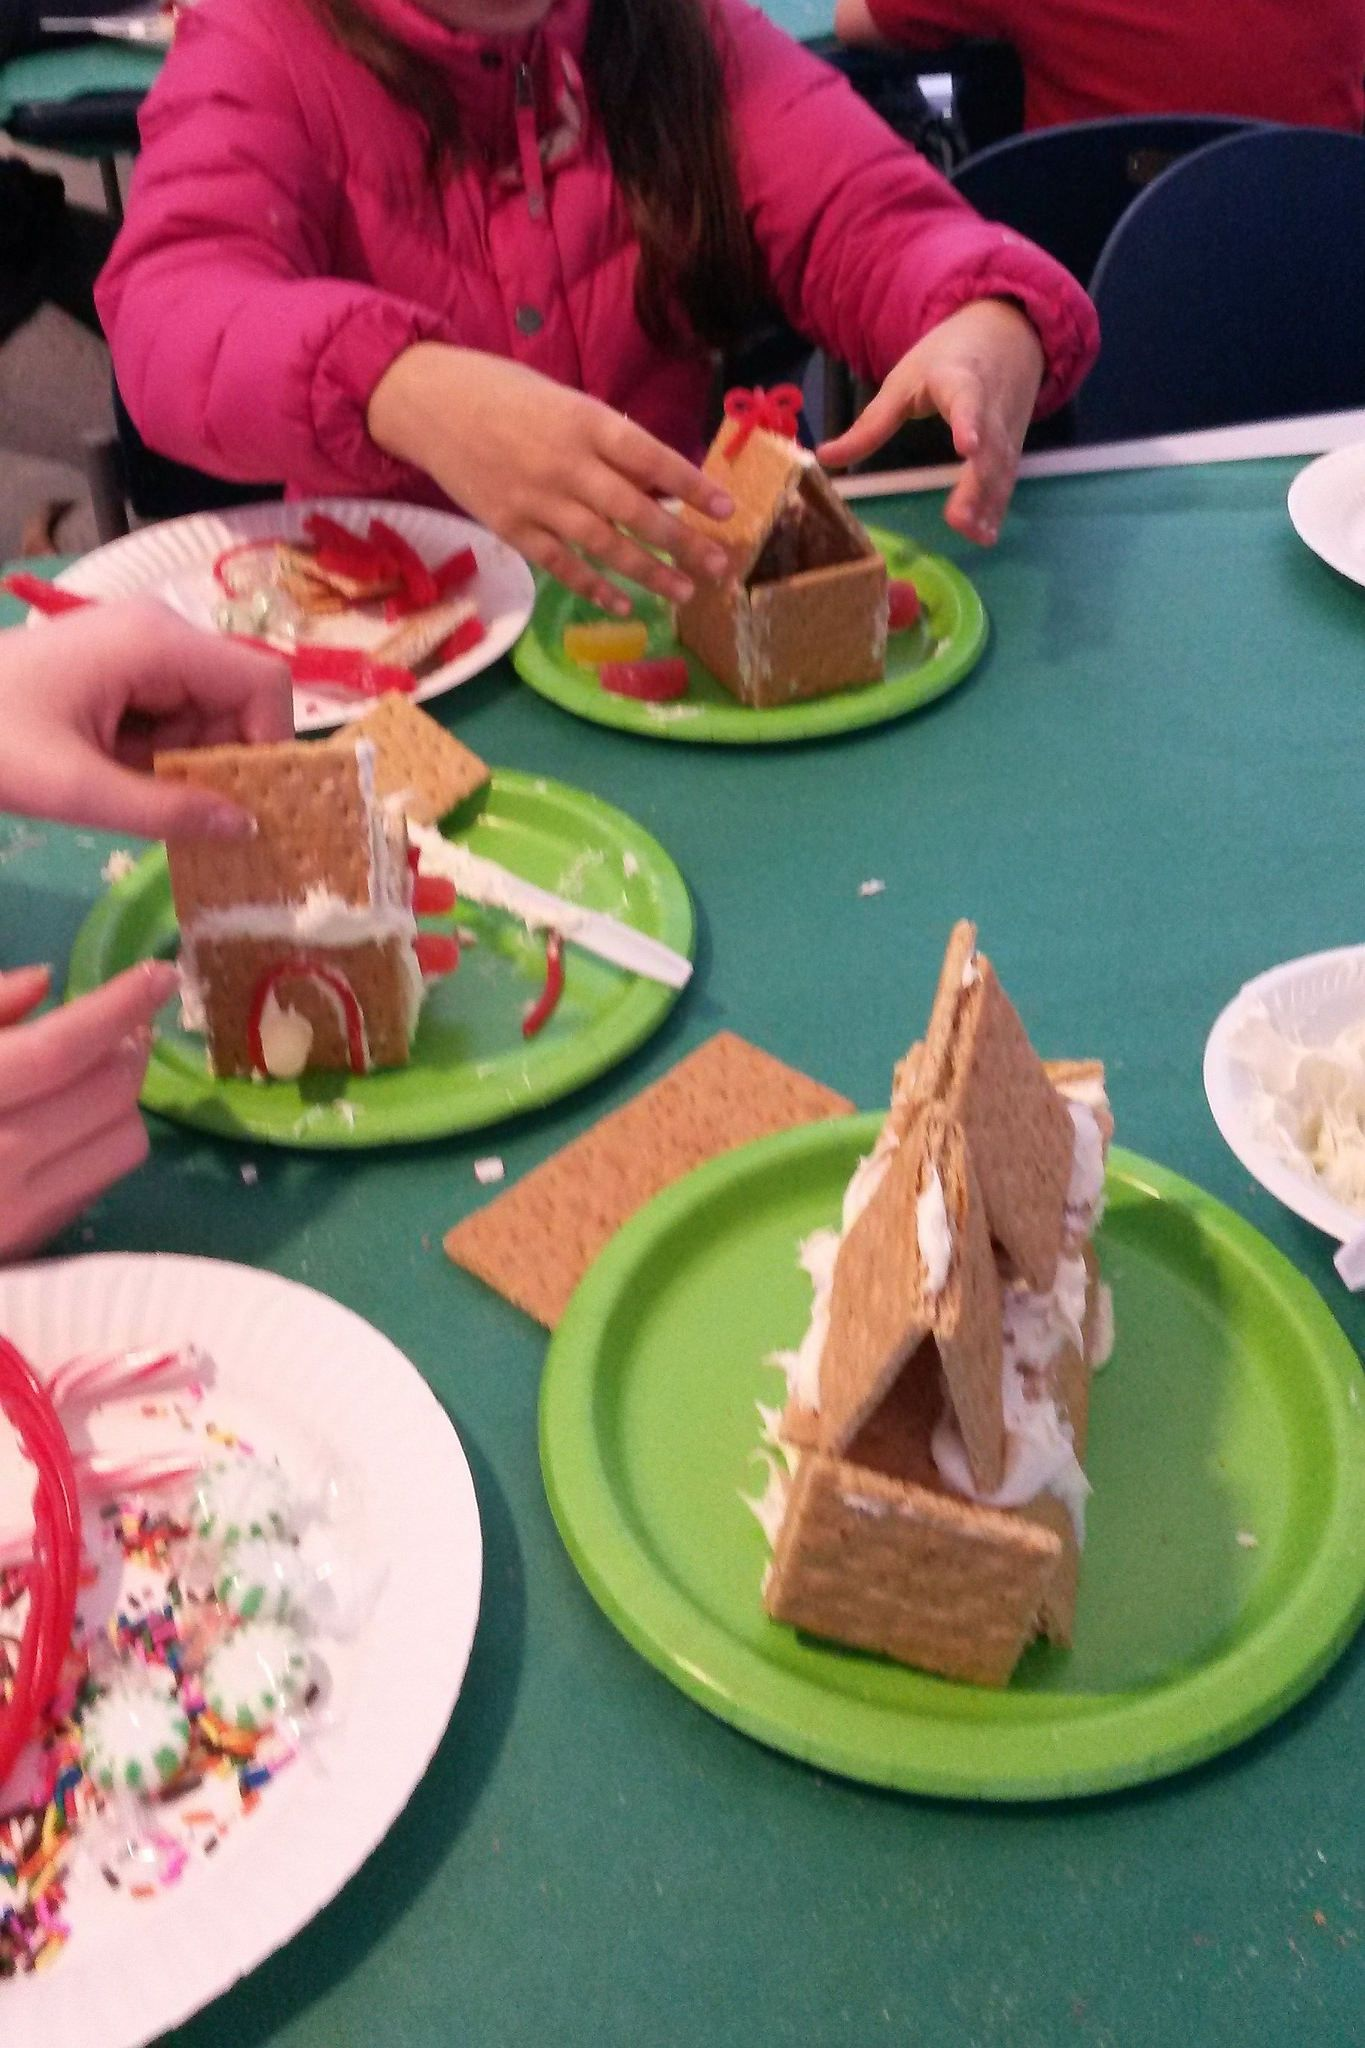 https://flic.kr/p/CunbQa | Tween Gingerbread Houses - Dec 19 2015 | Tweens got creative and made gingerbread houses out of graham crackers and other treats!  Dec. 19, 2015.